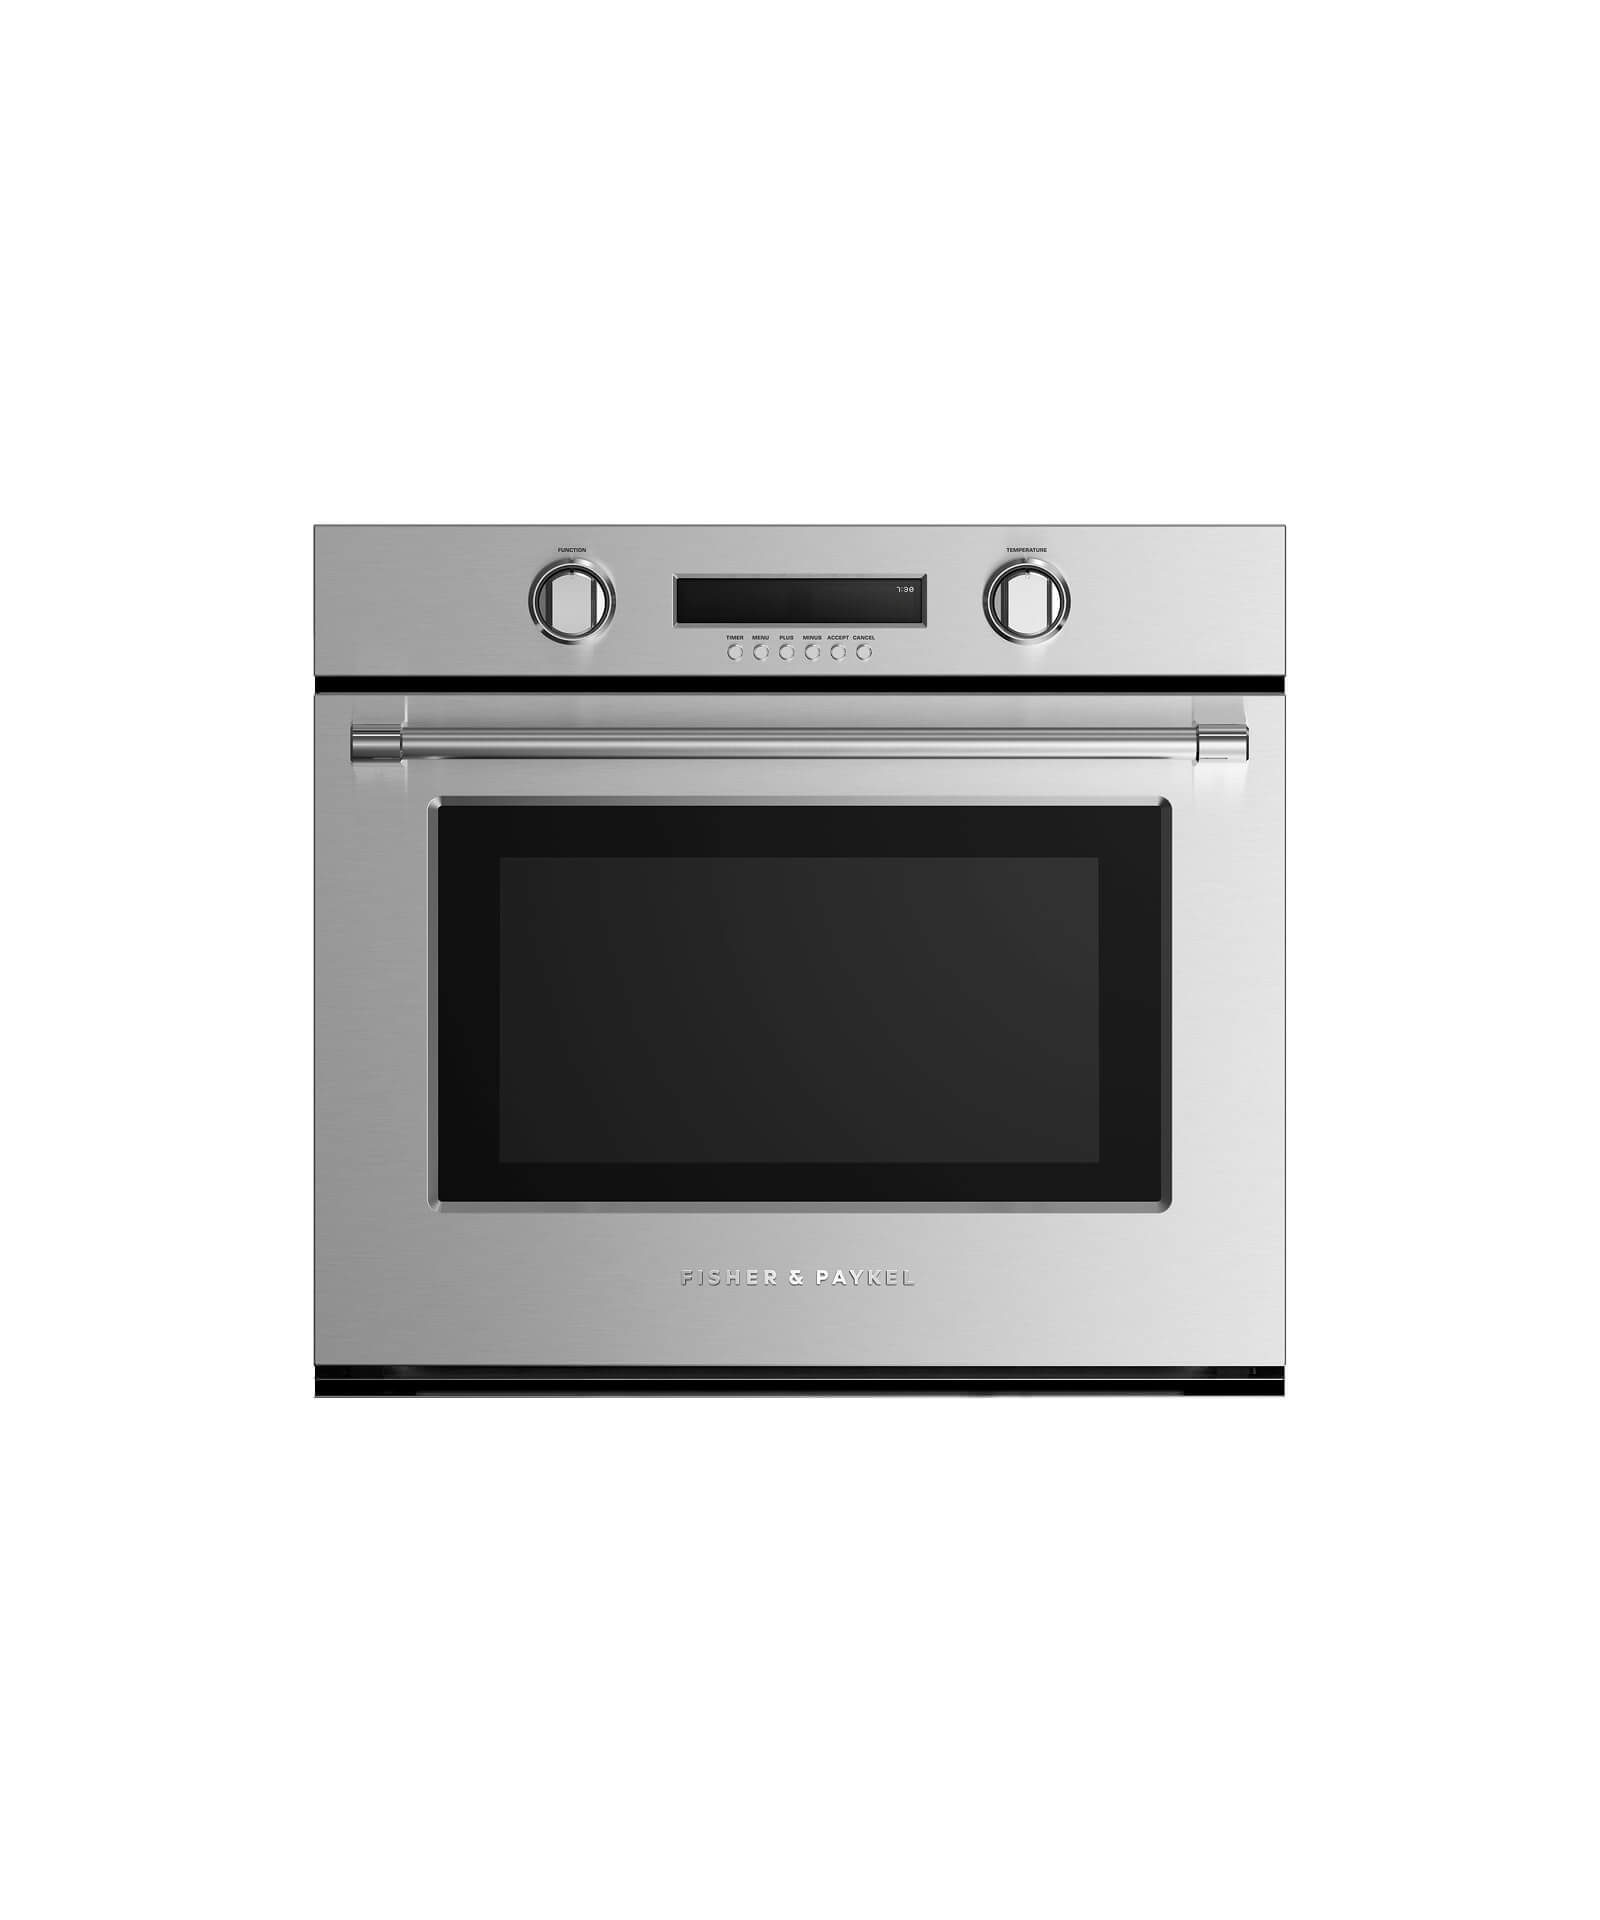 "Fisher and Paykel Built-in Oven 30"" 4.1 cu ft, 10 Functions"